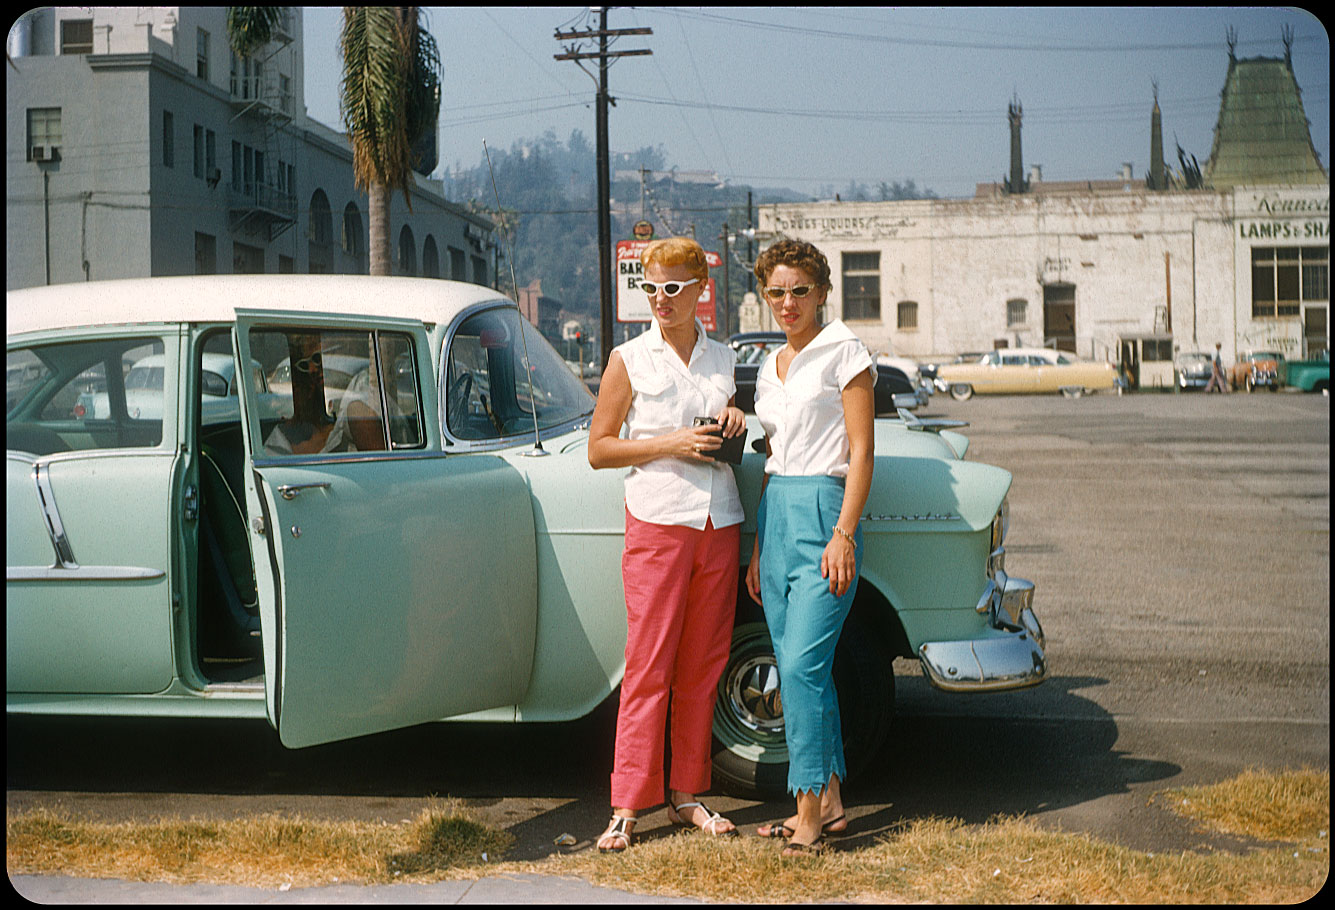 The 1950s American Car And Road Trip In Kodachrome